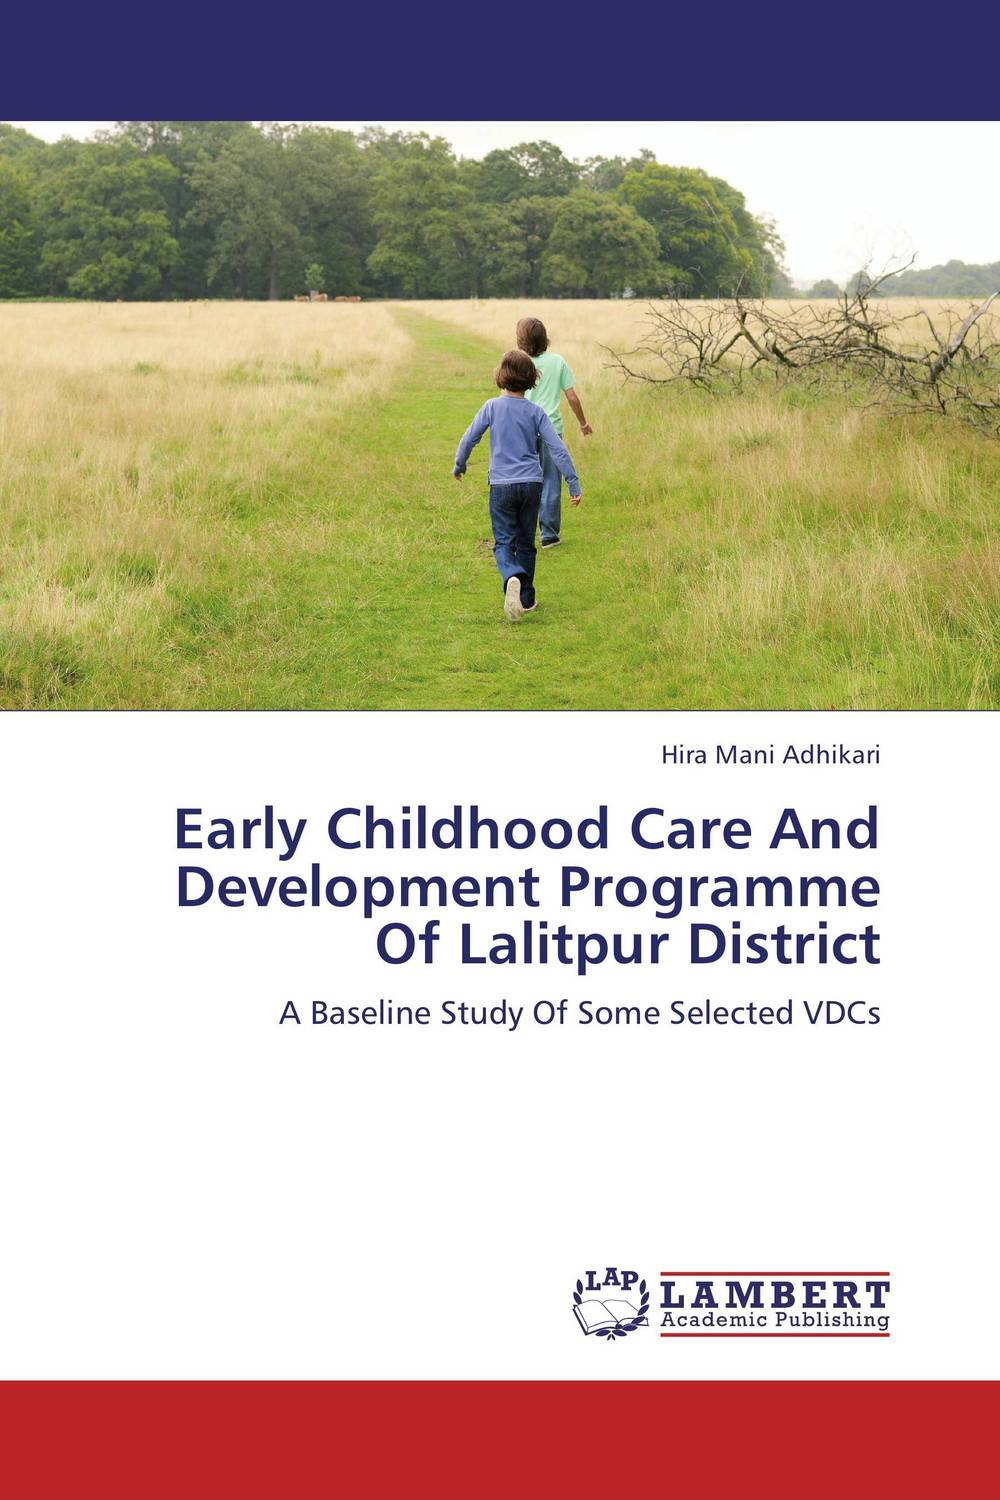 Early Childhood Care And Development Programme Of Lalitpur District